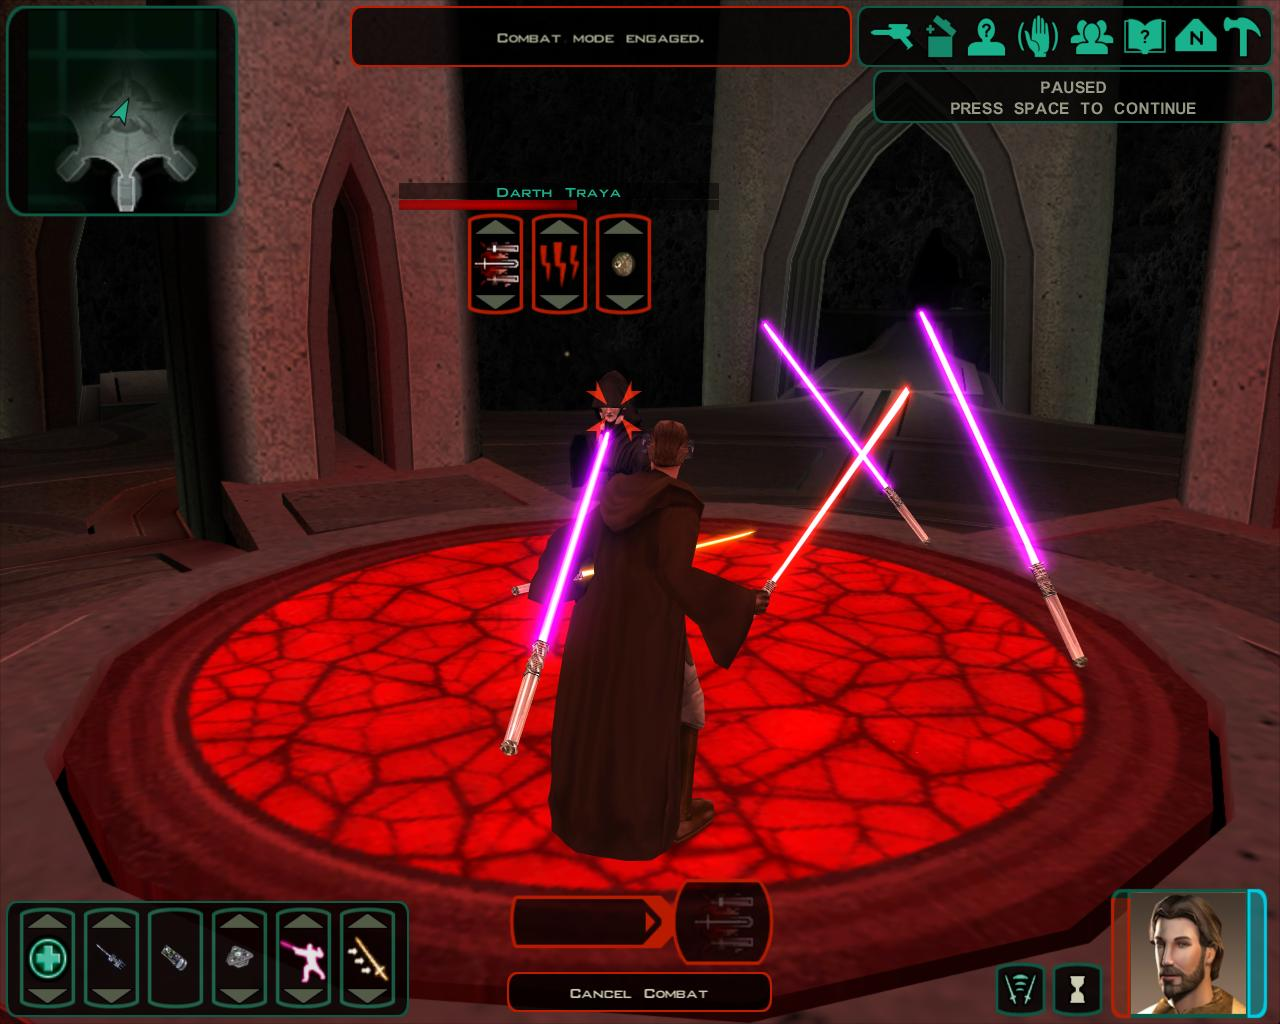 Darth Traya Improved Knights Of The Old Republic 2 Mods Images